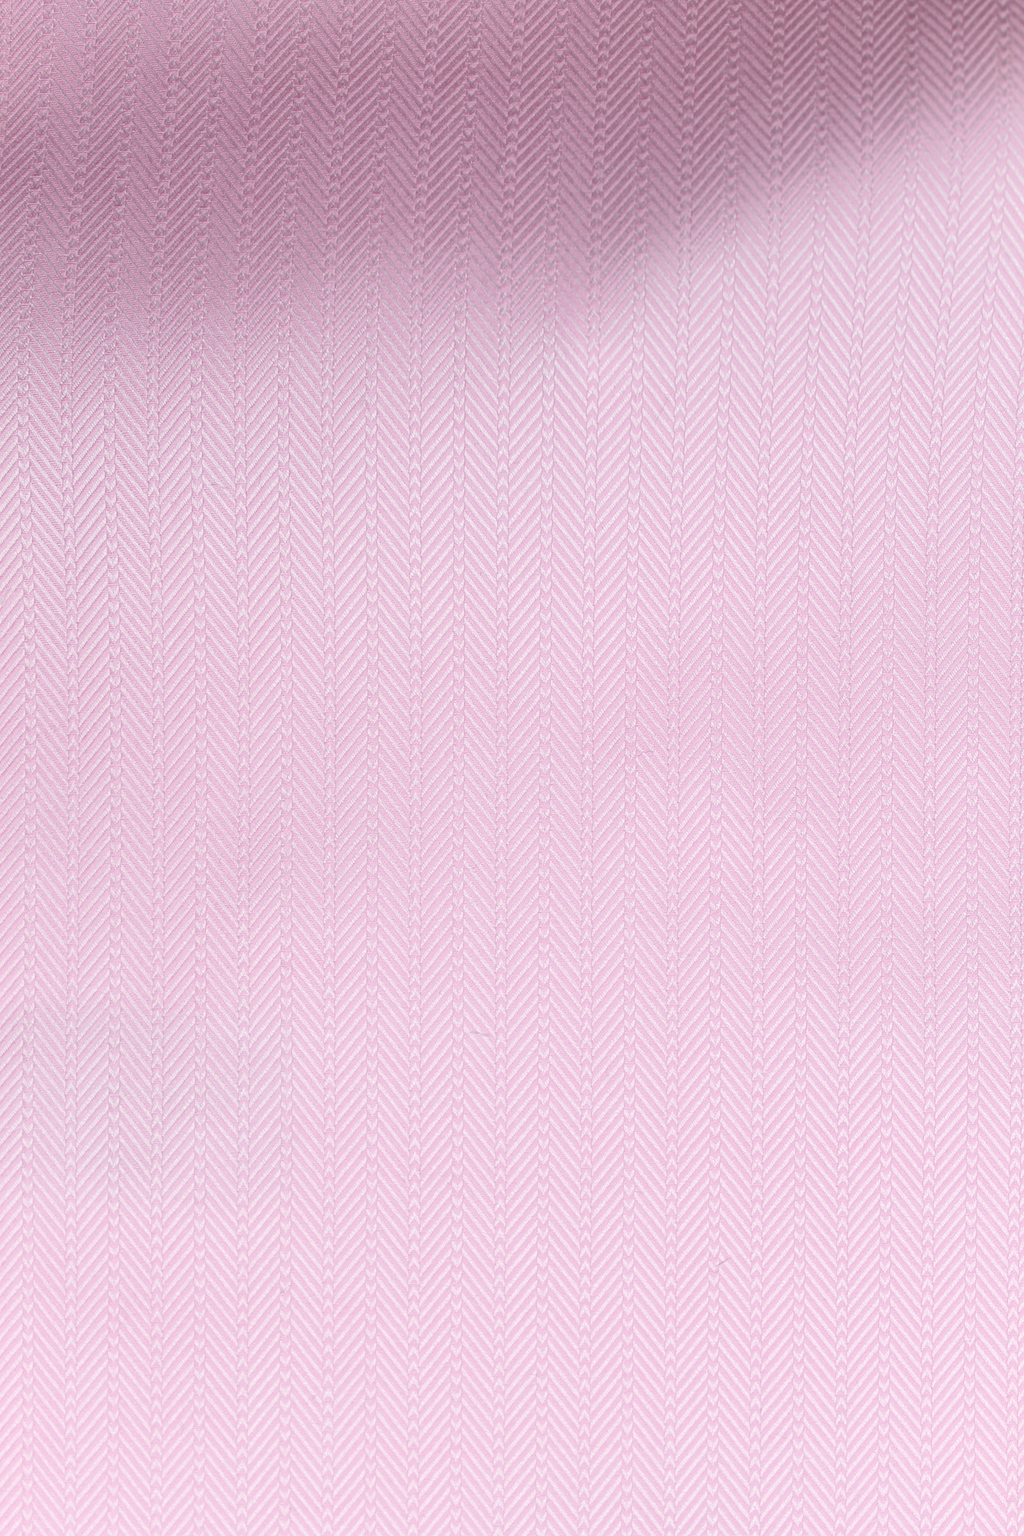 6696 Light Pink Mini Chevron.JPG